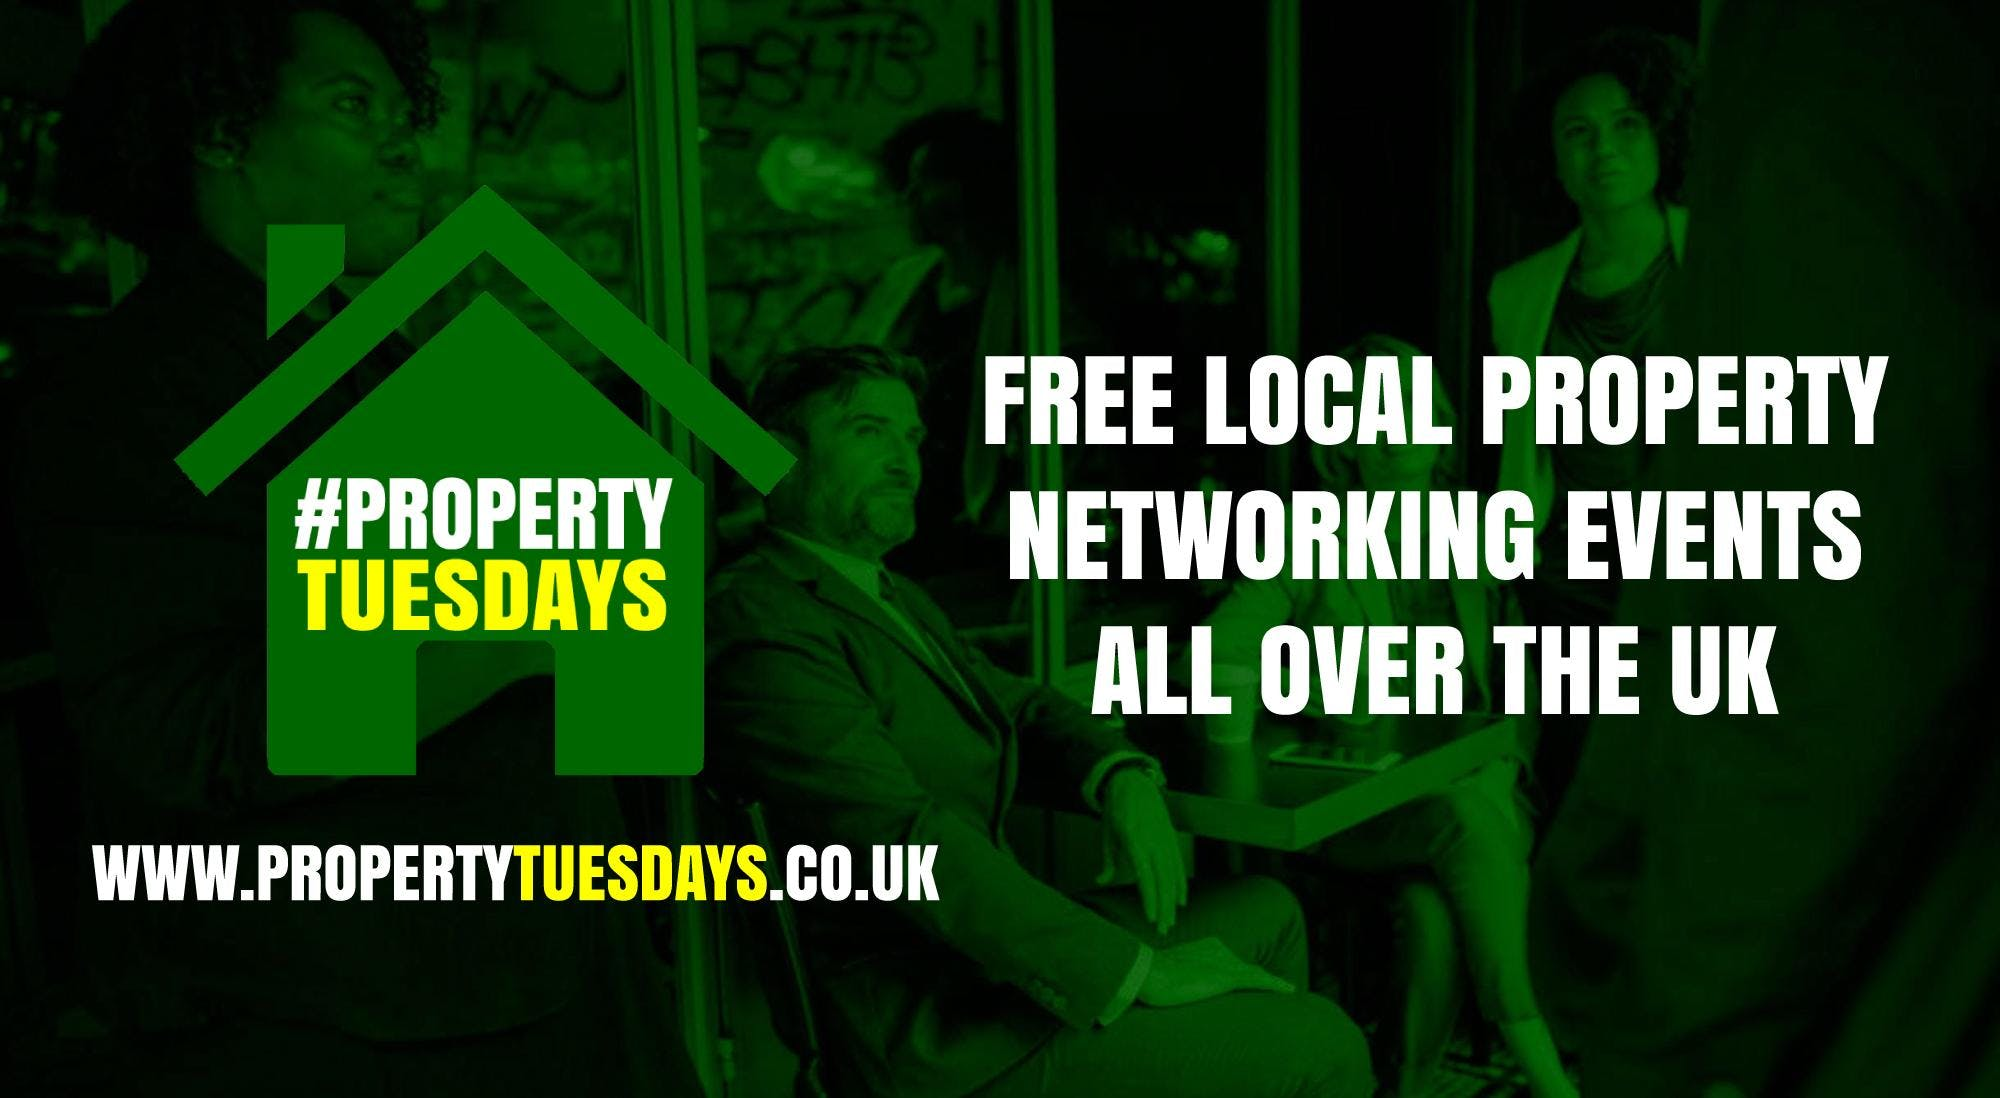 Property Tuesdays! Free property networking event in Bournemouth